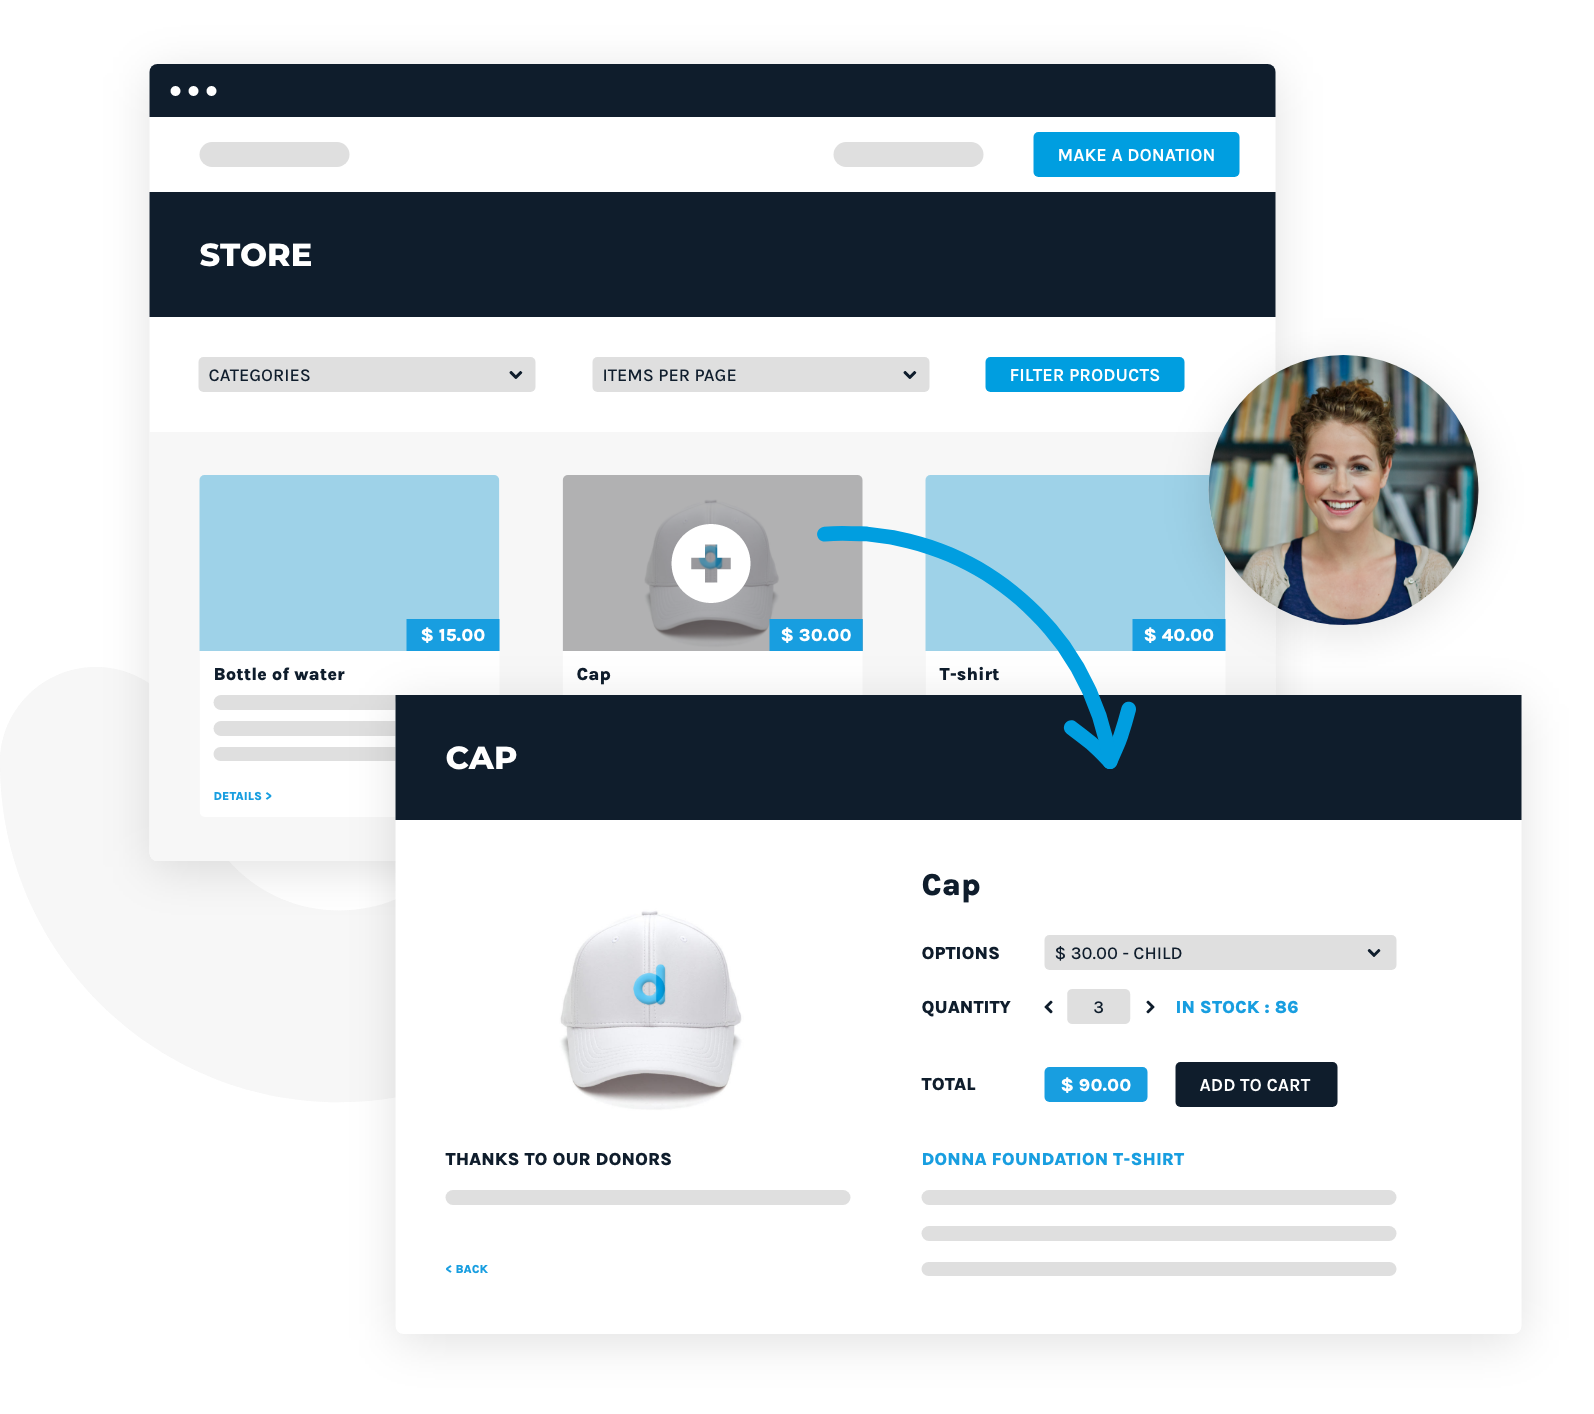 Interface representing webshop